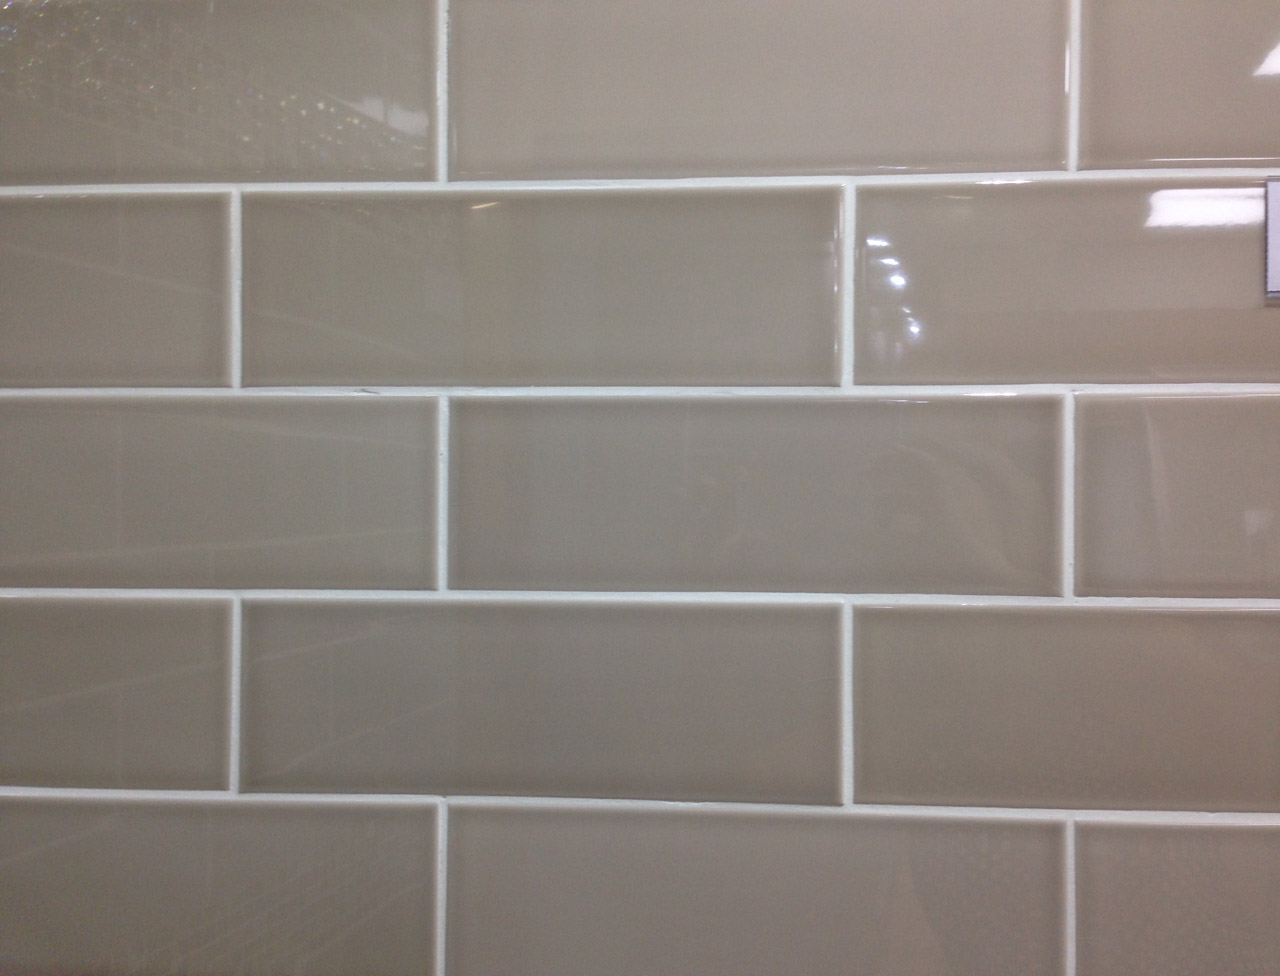 Gloss Beige Metro Glazed Ceramic Wall Tile Suitable For